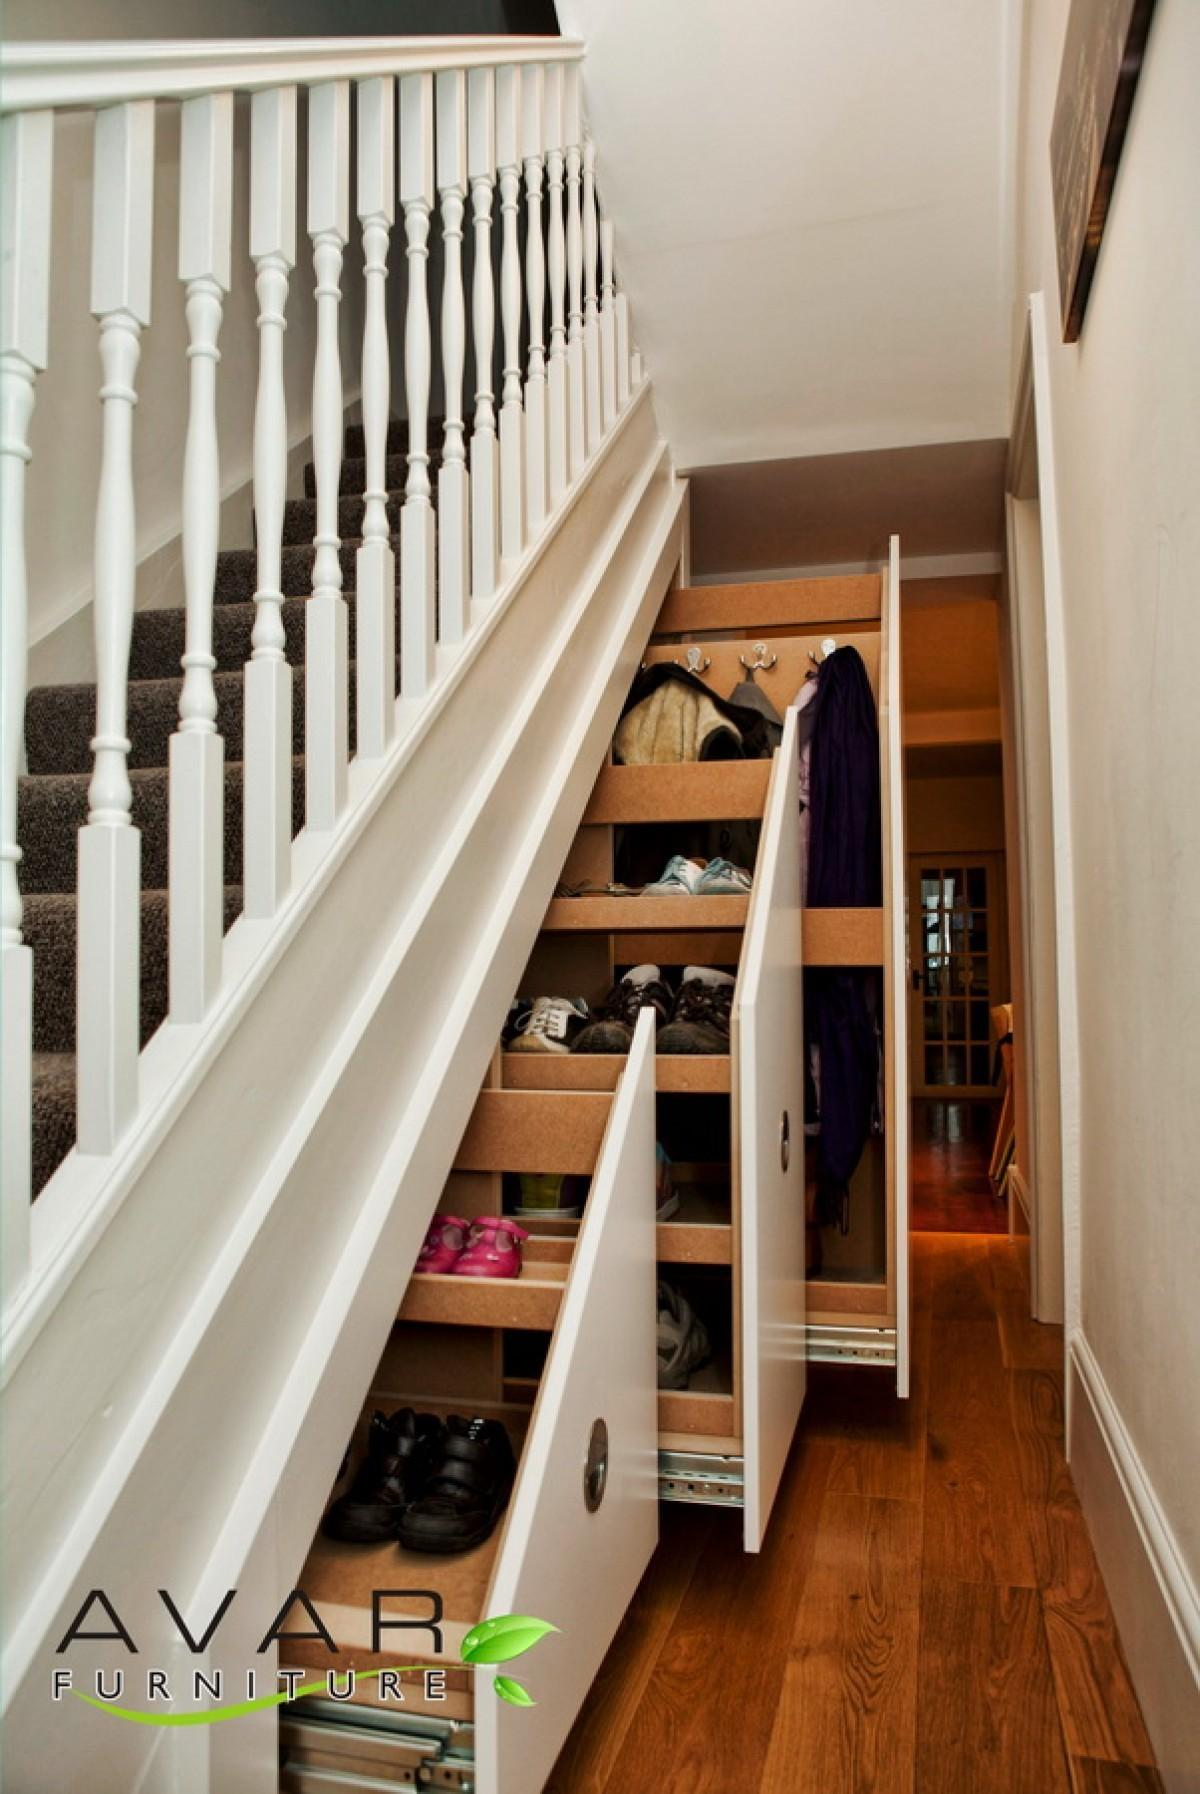 Under Stairs Storage Ideas Native Home Garden Design